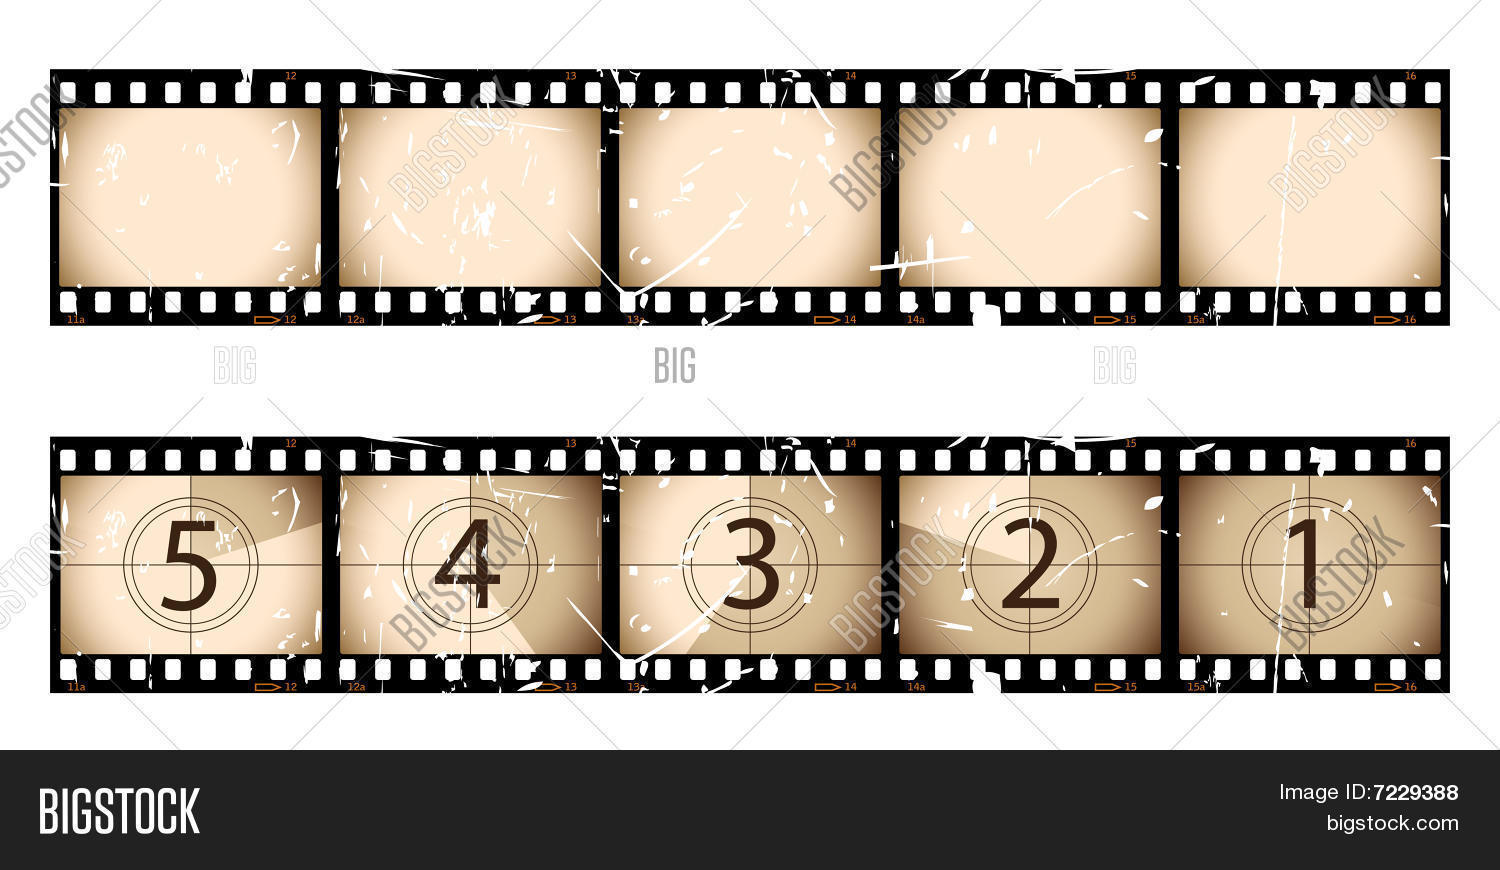 old sepia film strip countdown vector & photo | bigstock, Powerpoint templates